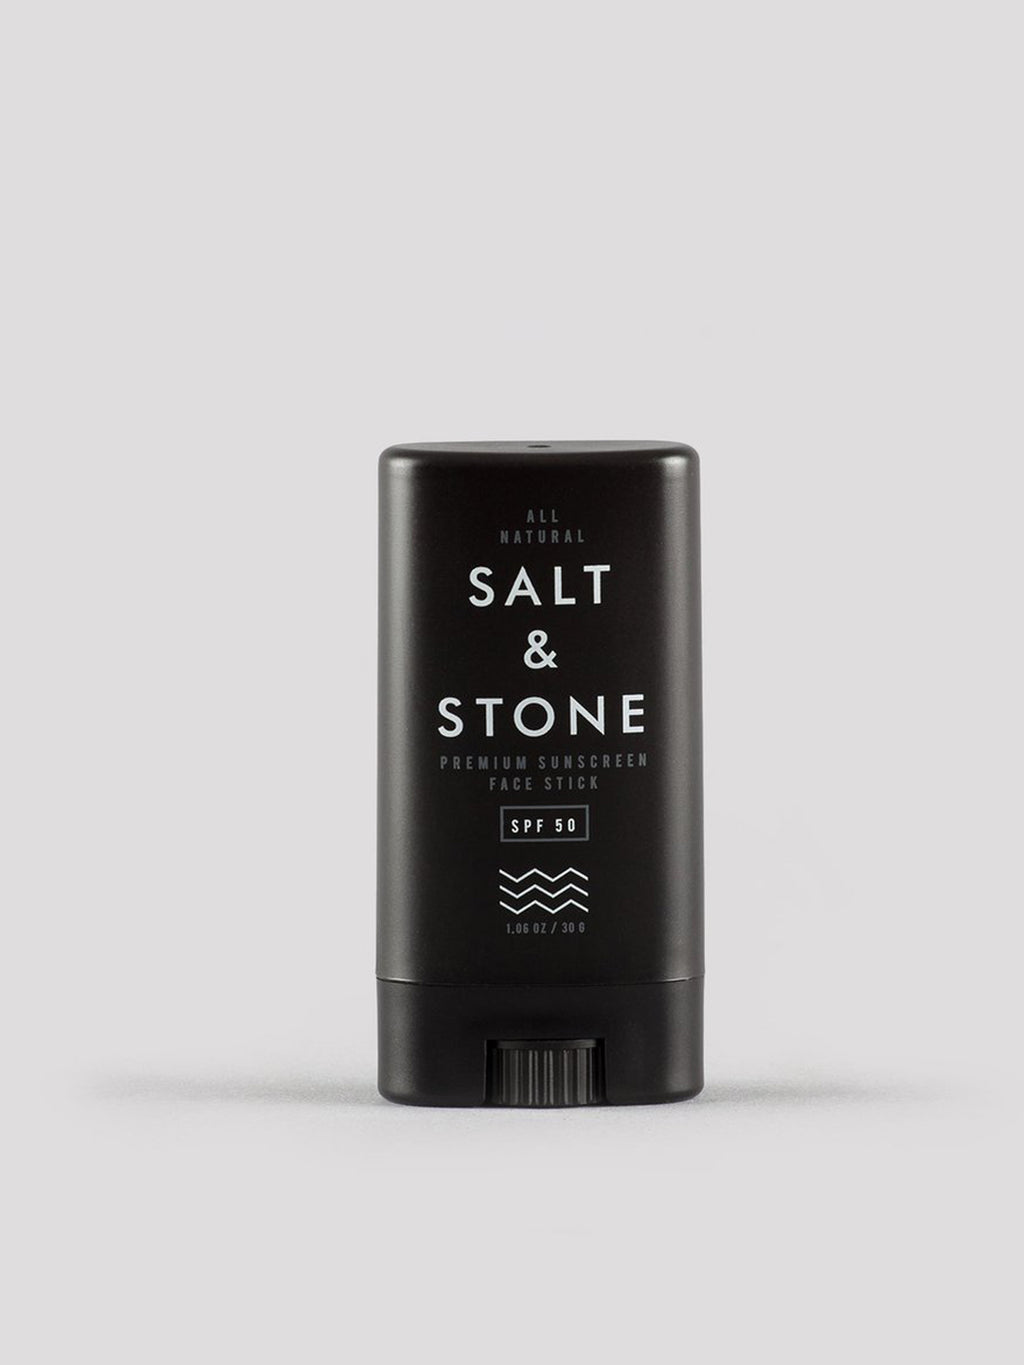 SALT & STONE SPF 50 FACE STICK